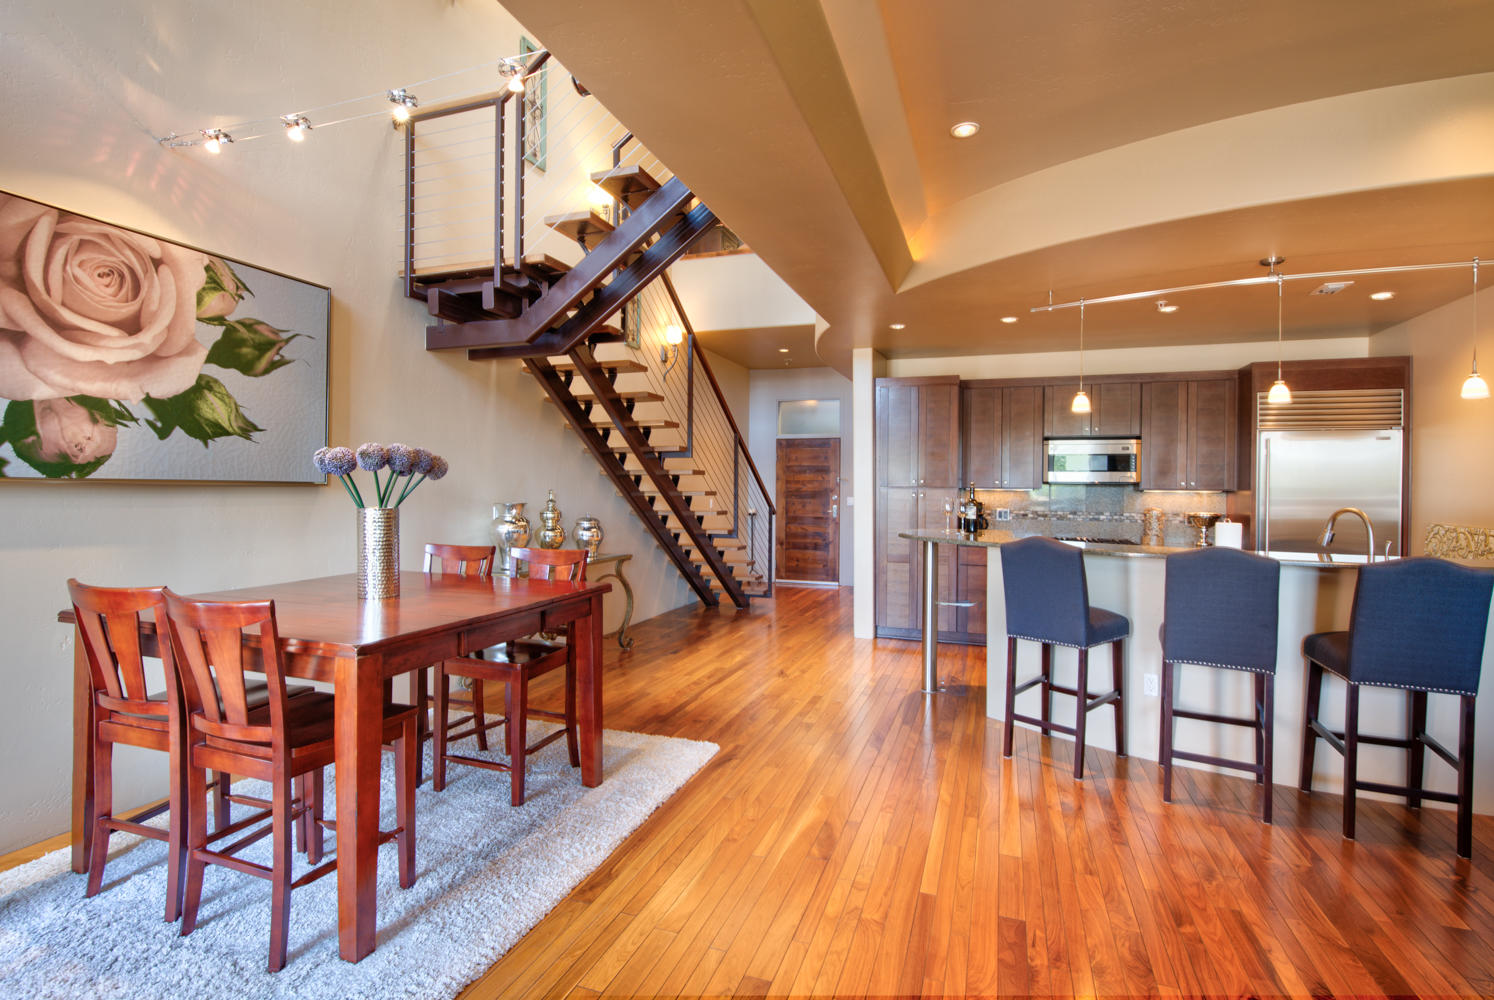 Immaculate Luxury former Model condo in the Heart of Nob Hill just steps from shopping, restaurants, parks and much more! Beautiful hardwood floors, granite counters, Wolf stove/oven, Sub Zero Fridge, 2 Master Suites, large windows, 2-car garage, Views of Central from balcony and so much more! Mountain Views from the large common area deck.  Very well cared for home is in need of new owners.  Come see this beauty today!